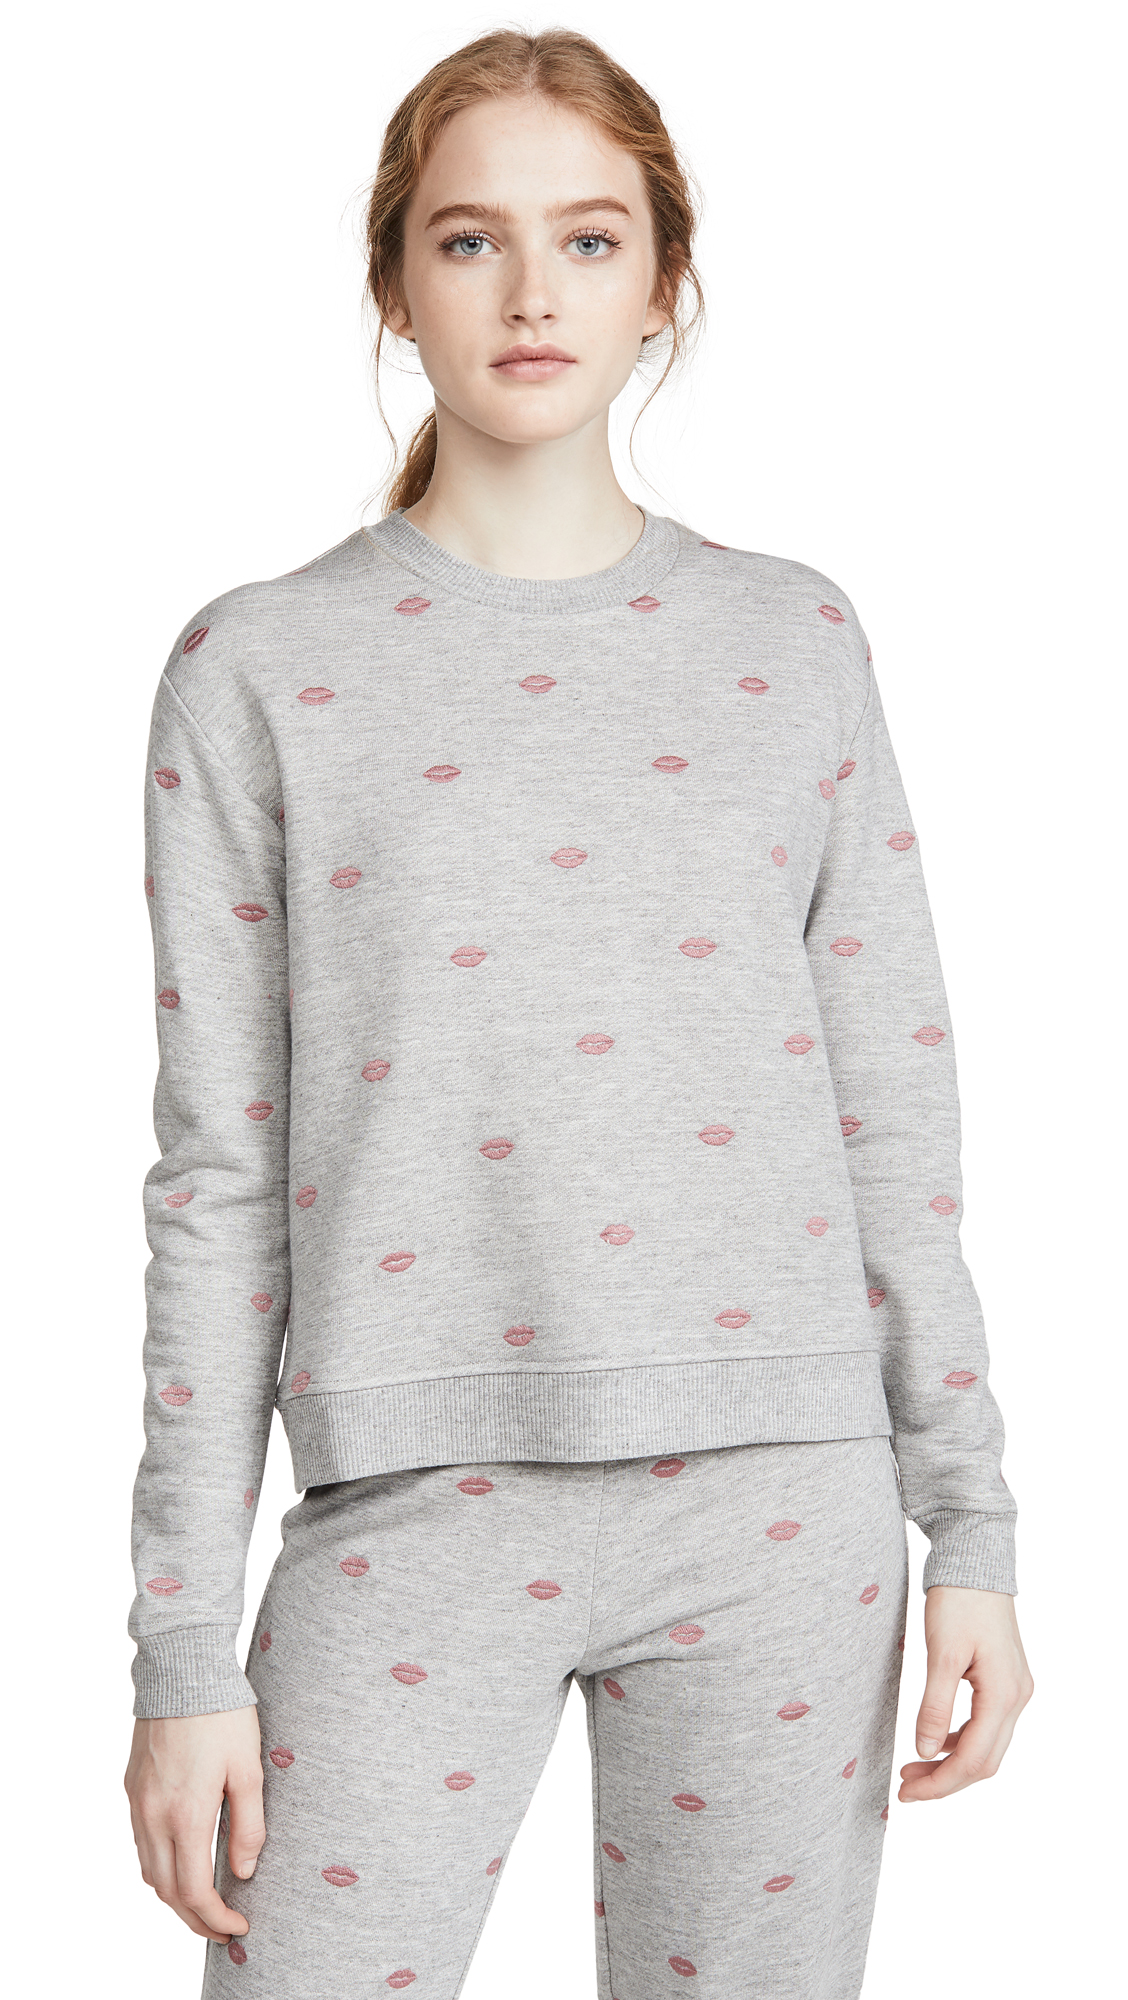 Splendid X's & O's Sweatshirt – 50% Off Sale